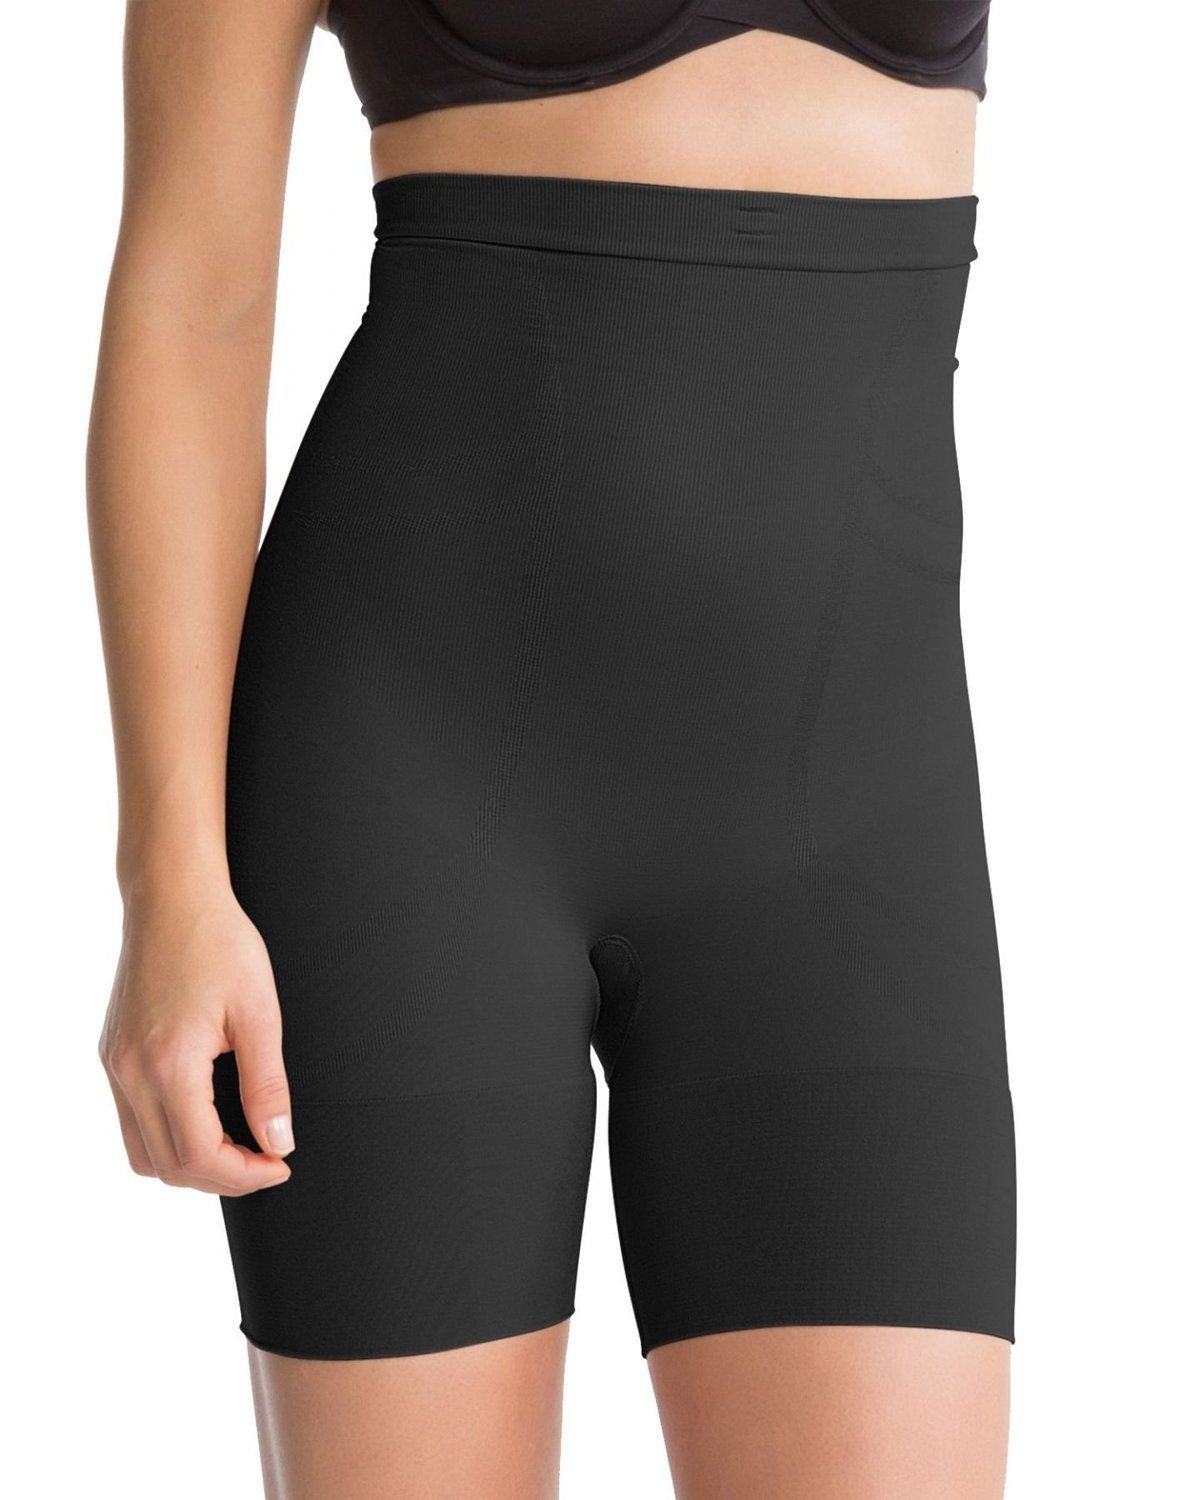 SPANX Slim Cognito High Waisted Mid Thigh Shaper 2433 Black Small